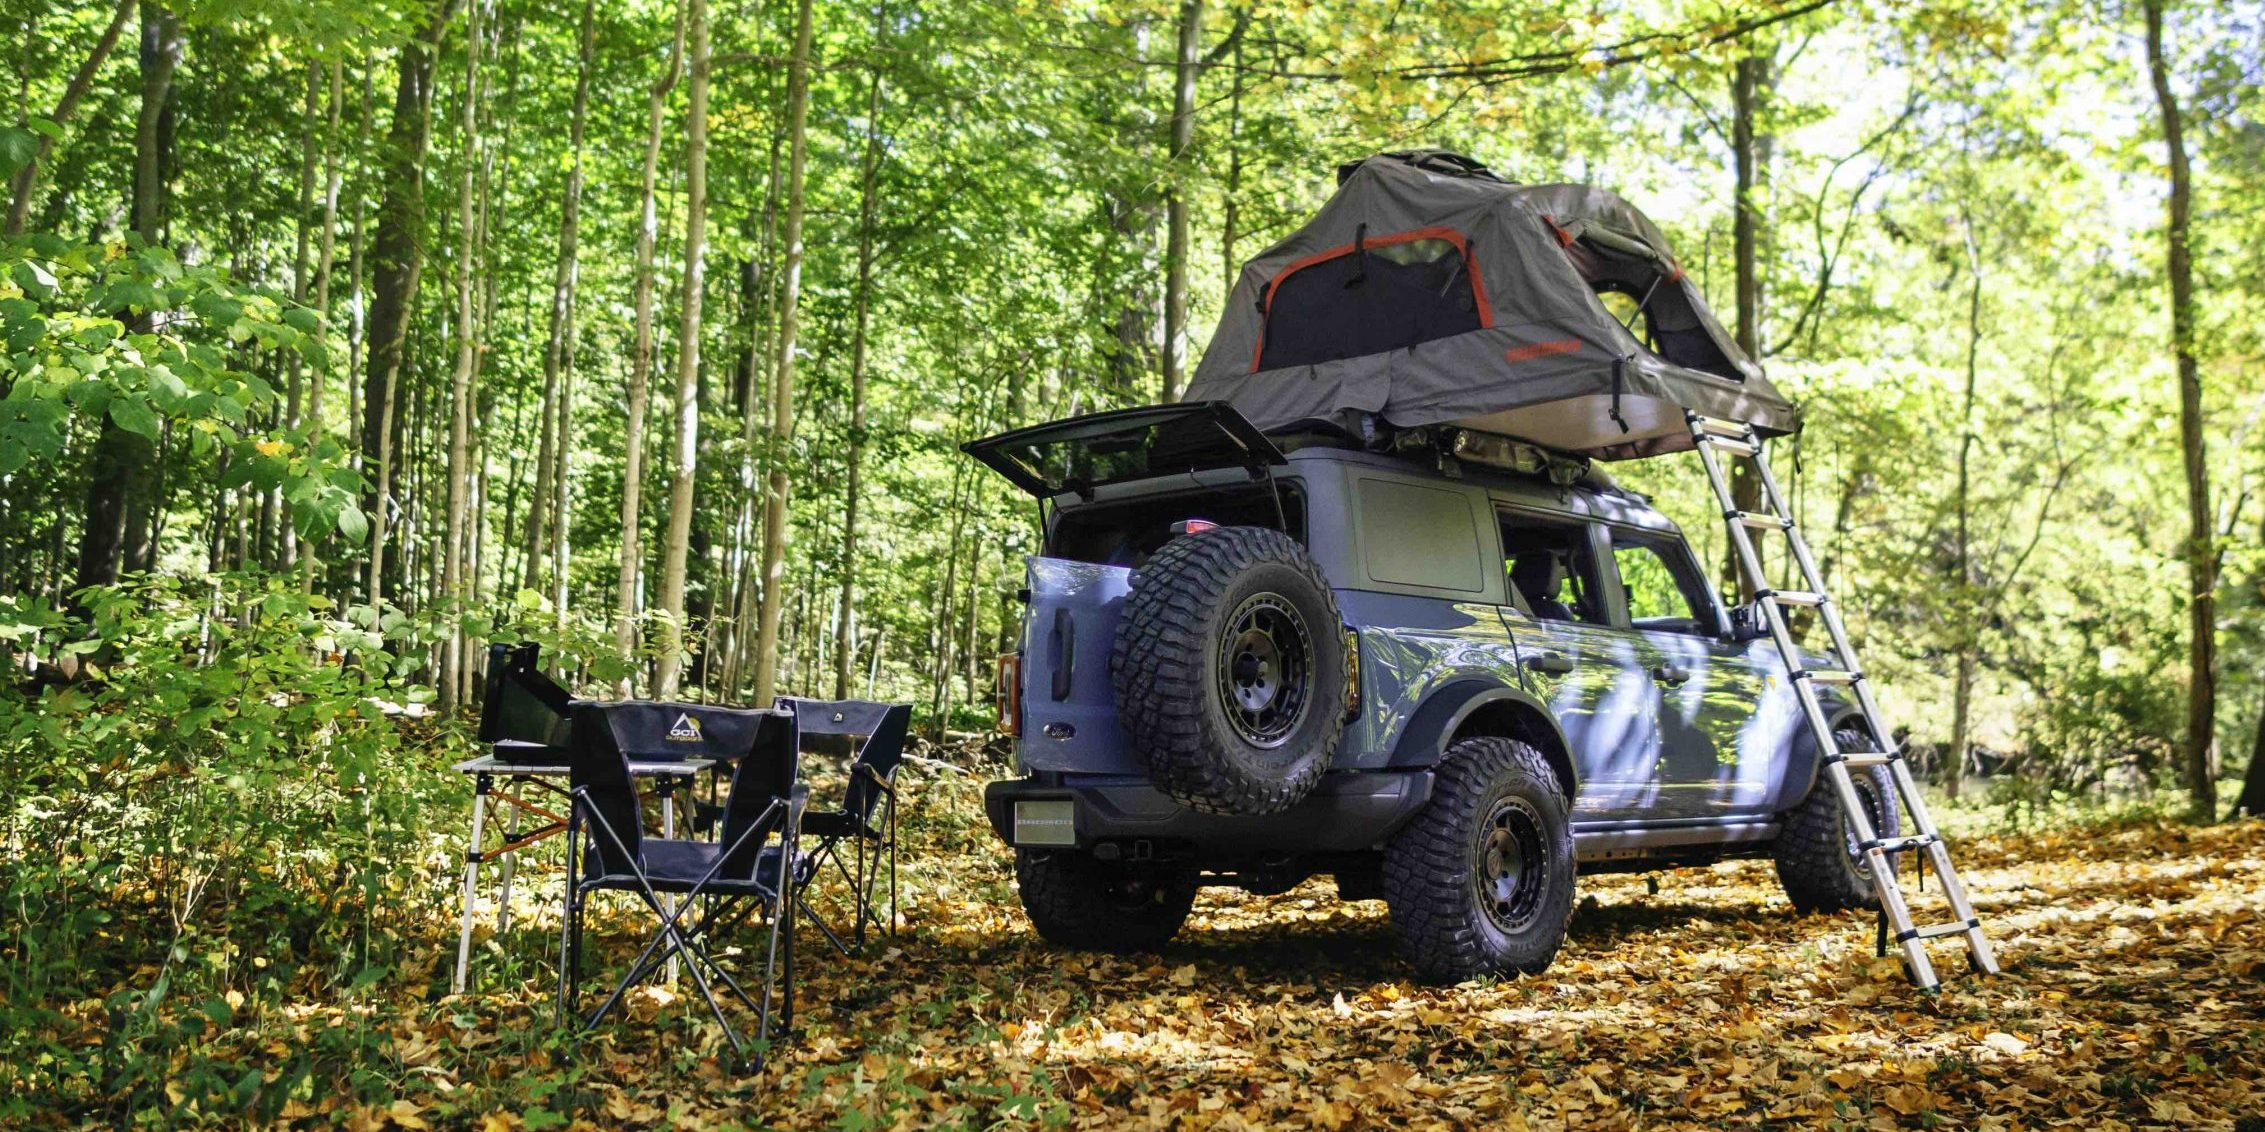 Has Ford rediscovered adventure with Bronco Overland Concept?